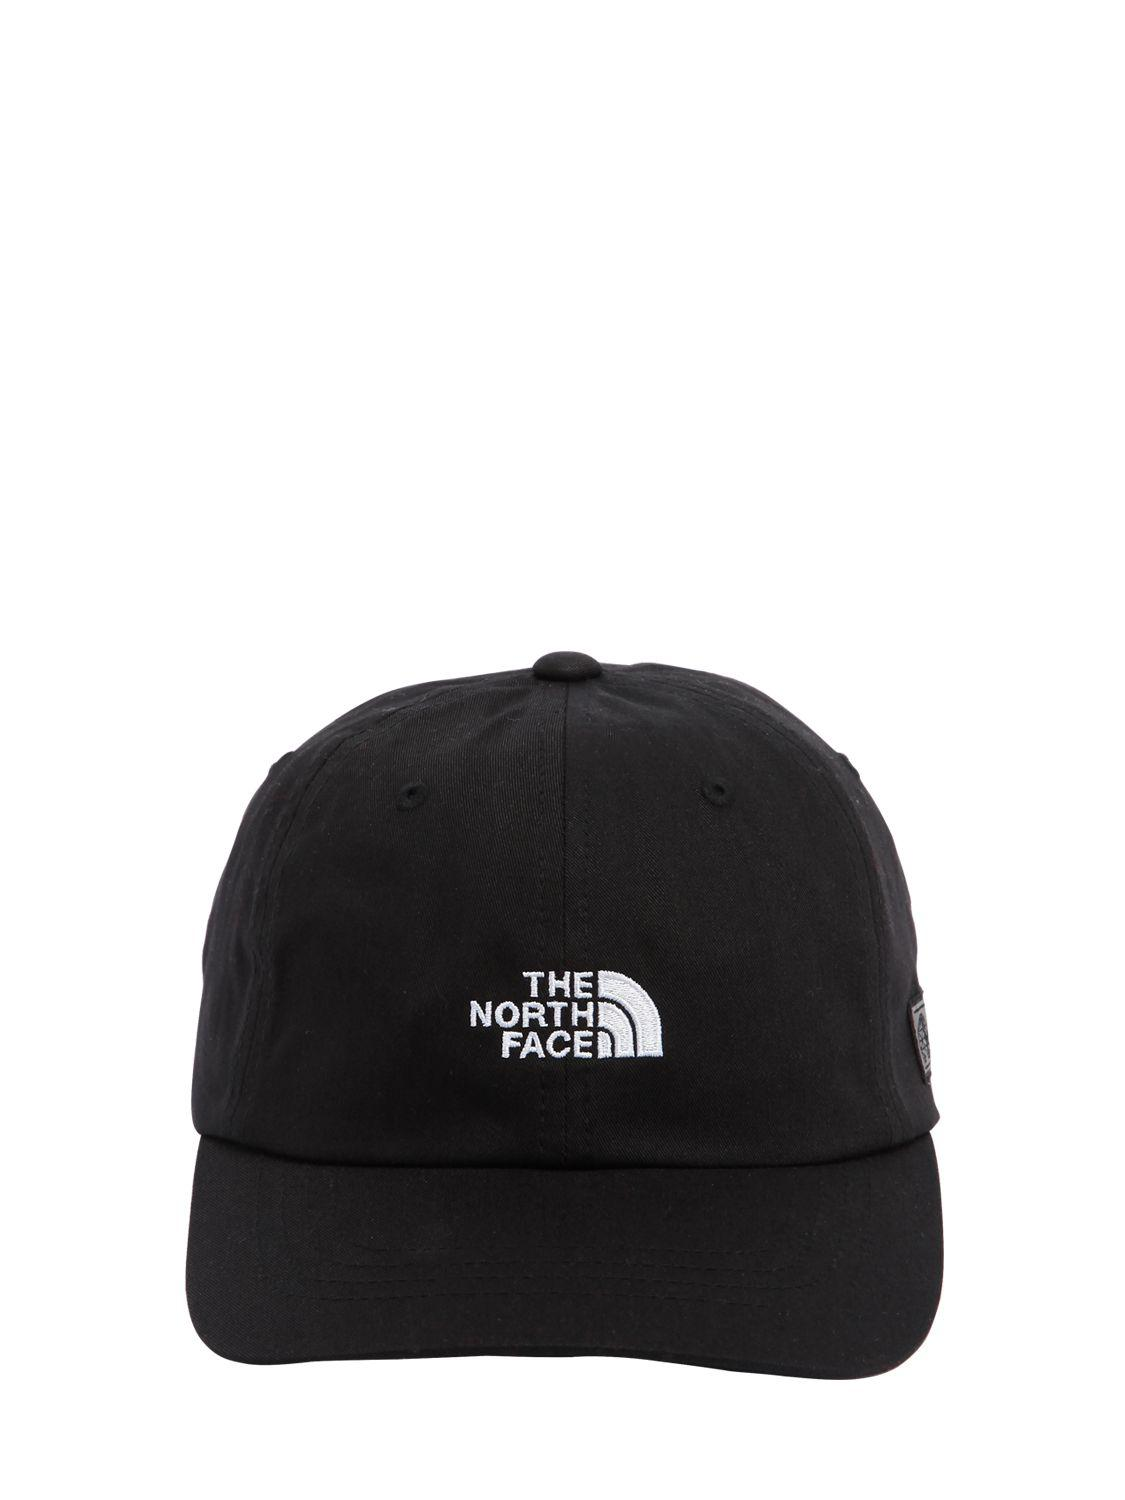 The North Face Cappello Baseball Limited Edition in Black for Men - Lyst 64629d66ad73